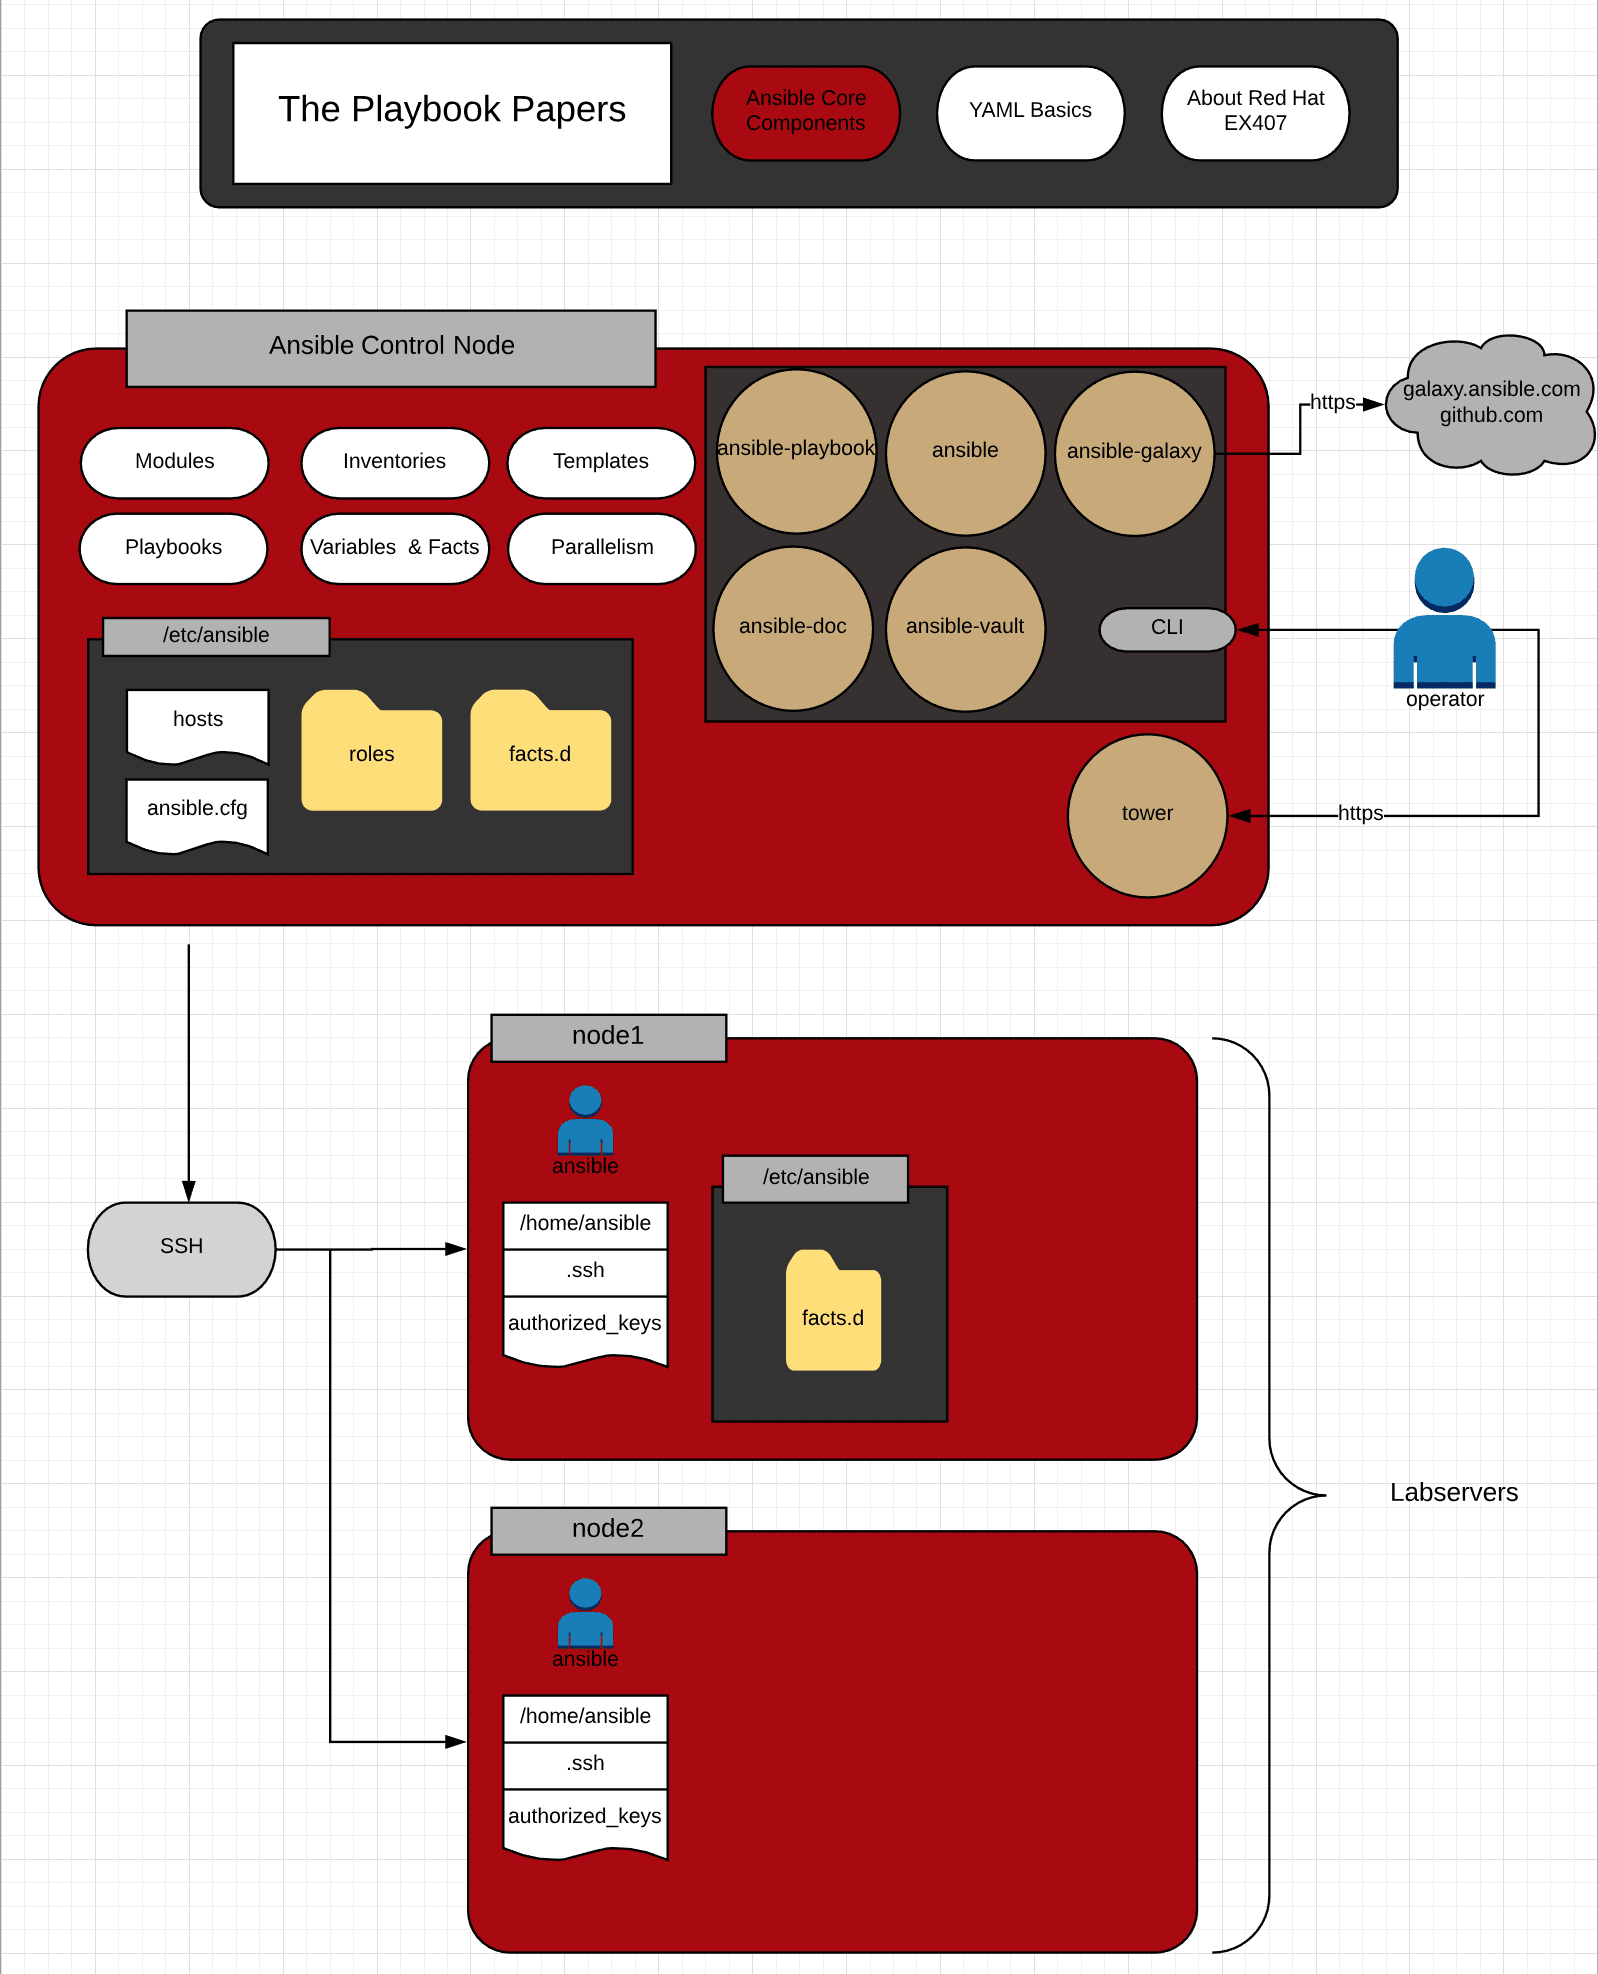 Ansible the Playbook Papers Interactive Diagram